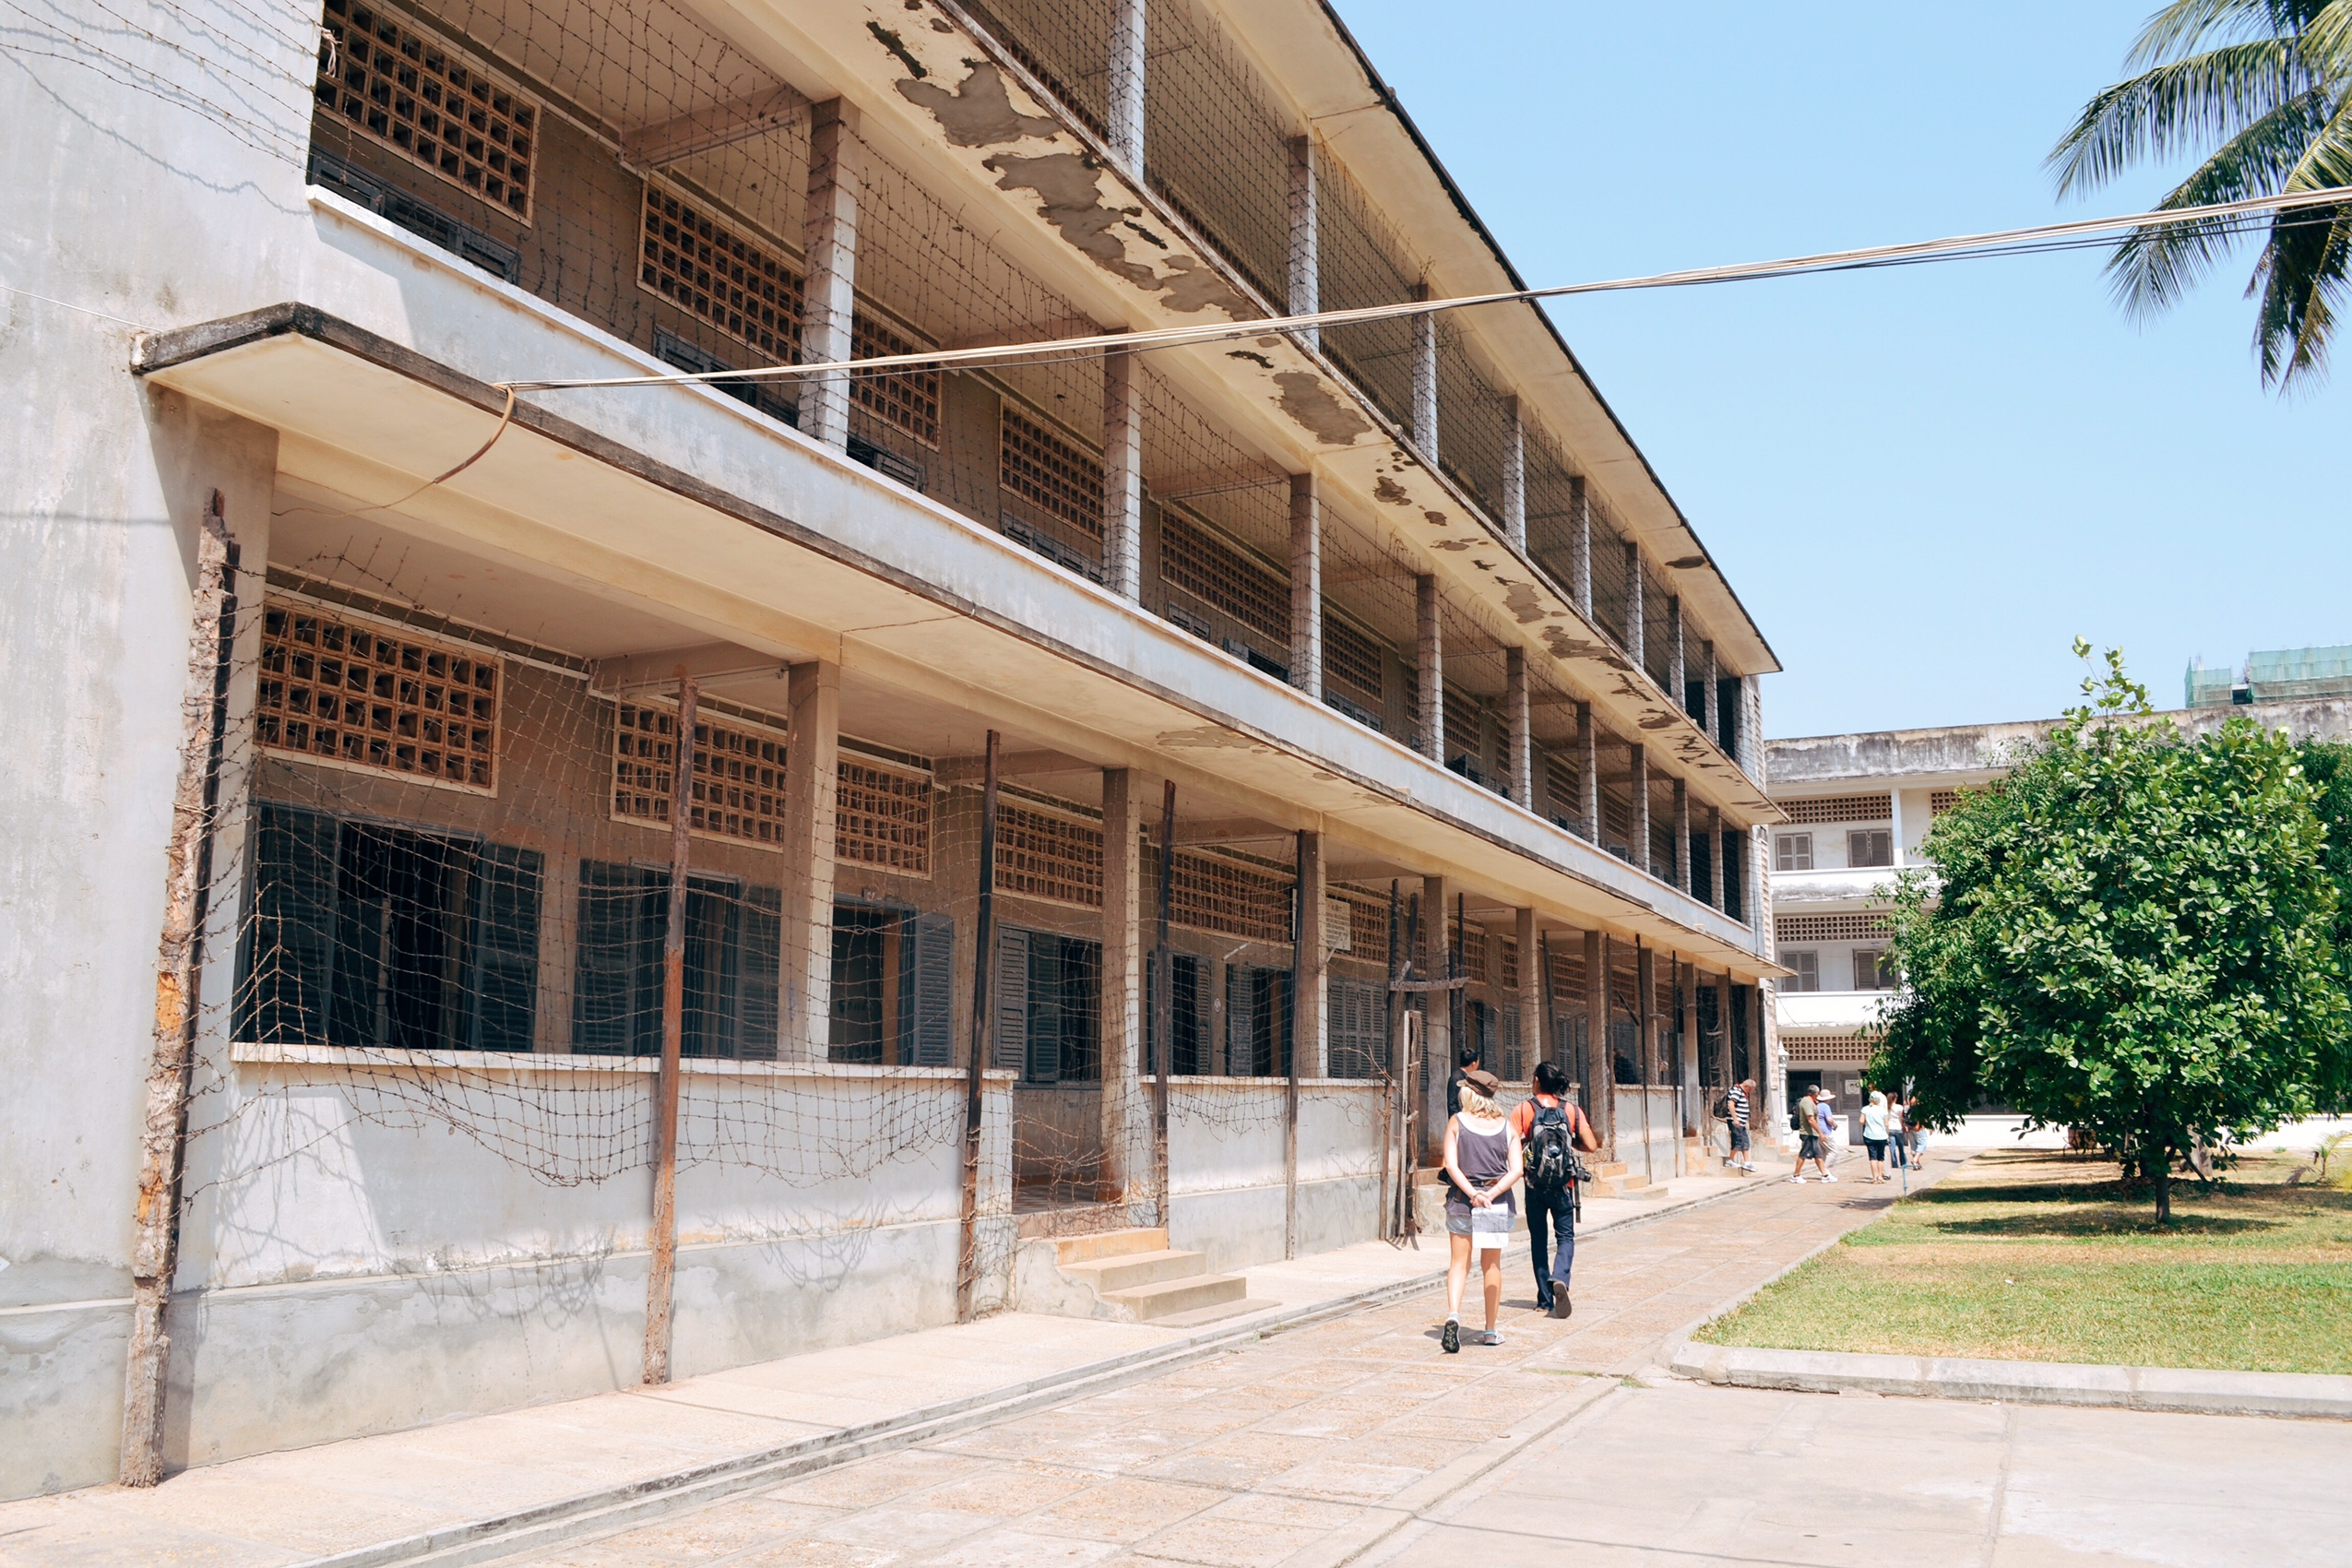 image of tuol sleng in Cambodia